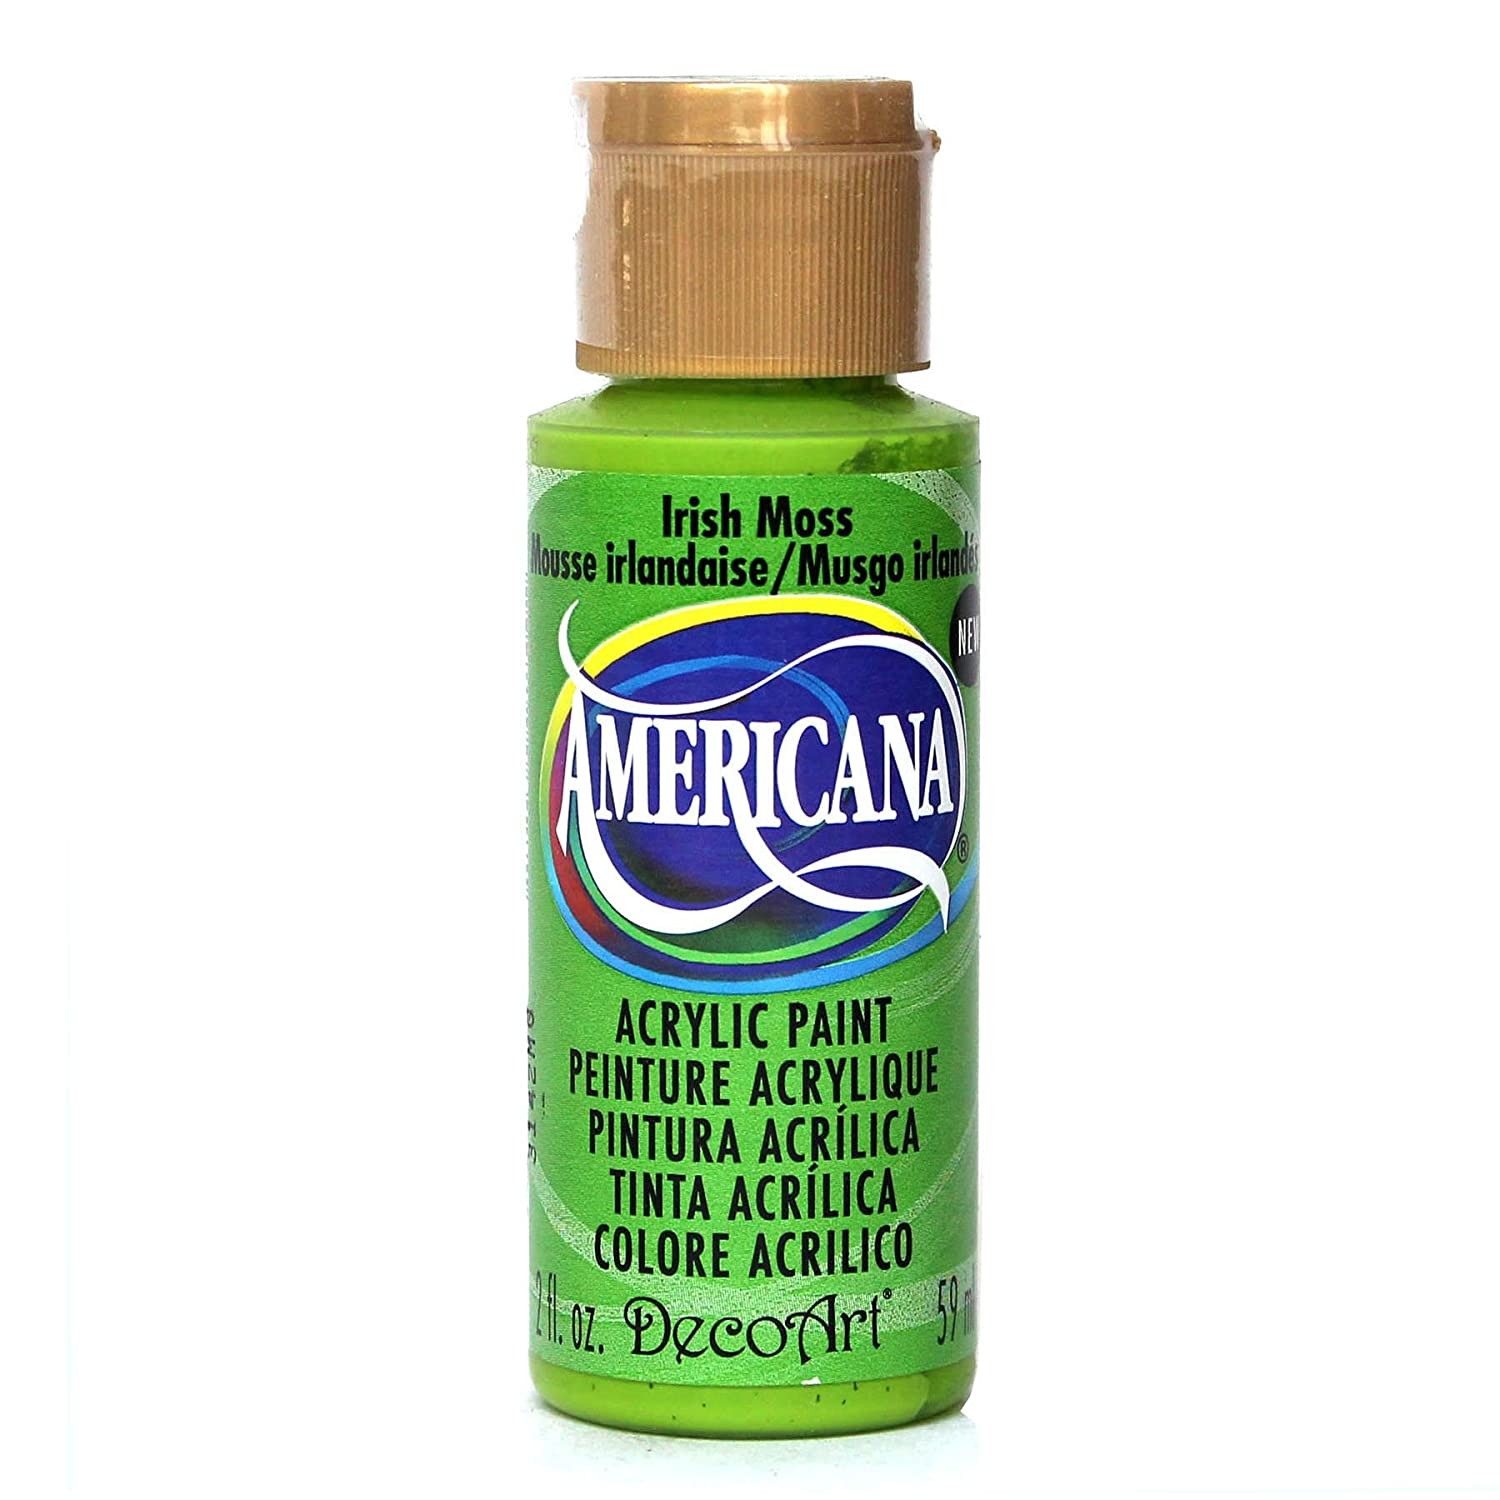 Deco Art Americana Acrylic Multi-Purpose Paint, Irish Moss DecoArt DA312-3